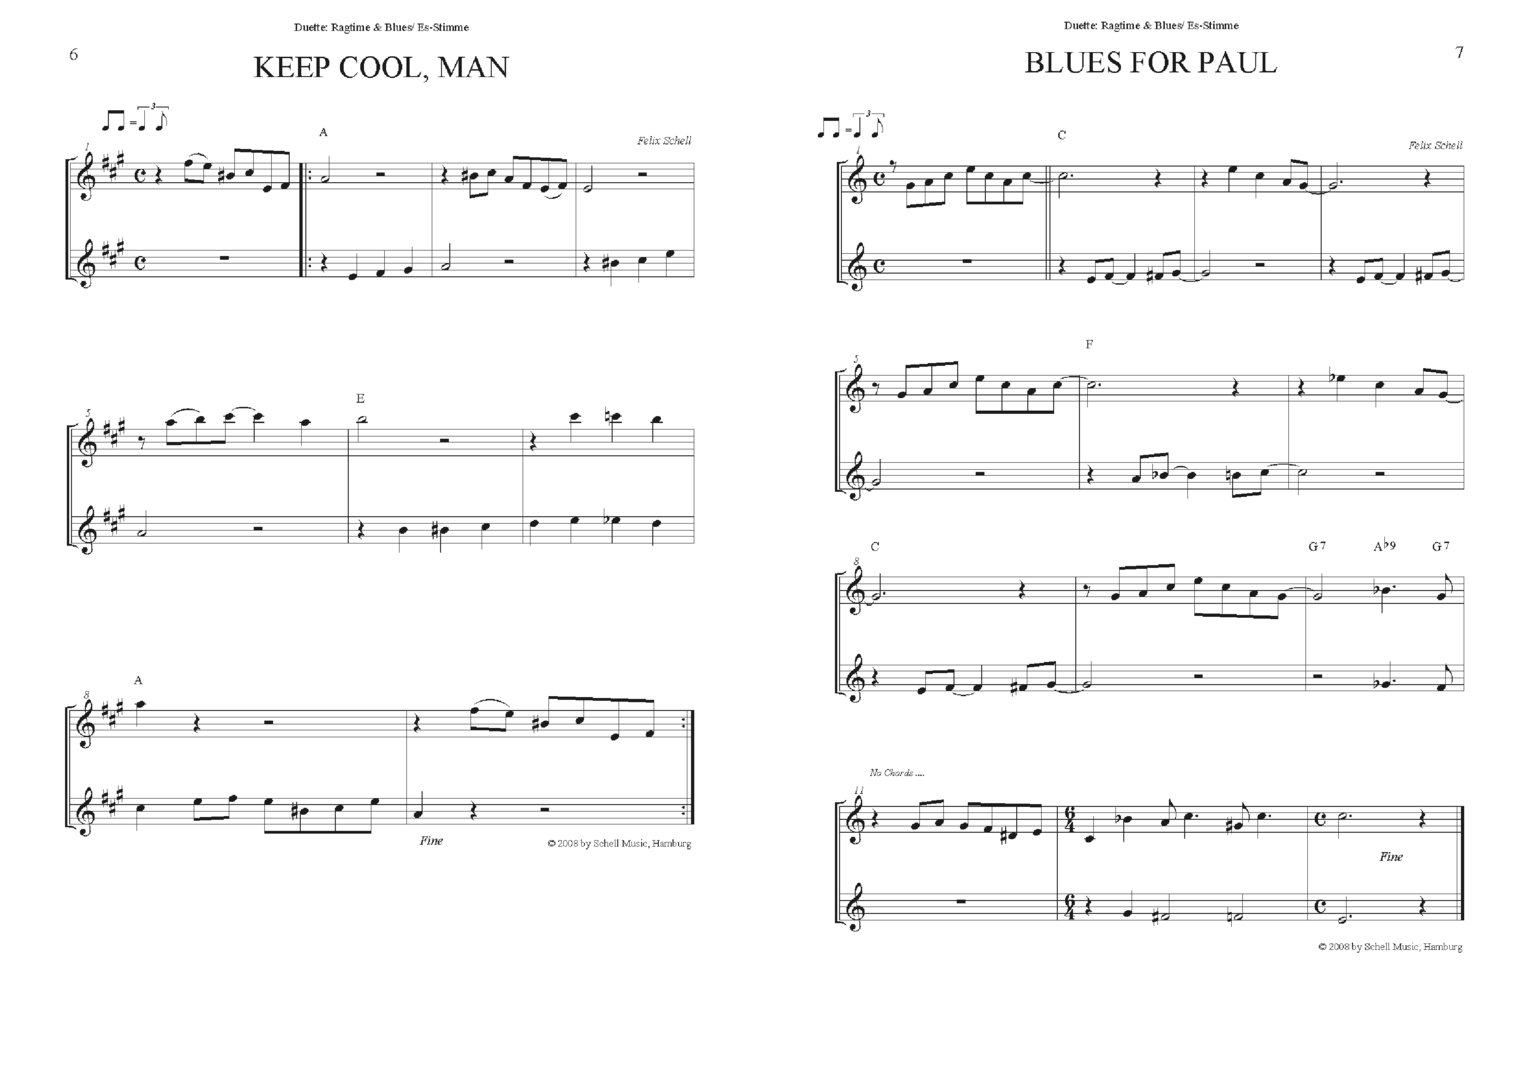 blues and ragtime The blues is the basis of jazz and rock 'n roll, and its vocabulary has remained intact the blues is primarily a vocal music its earliest form was singing and hand clapping (voice and percussion): work songs, chain gang songs, field hollers.